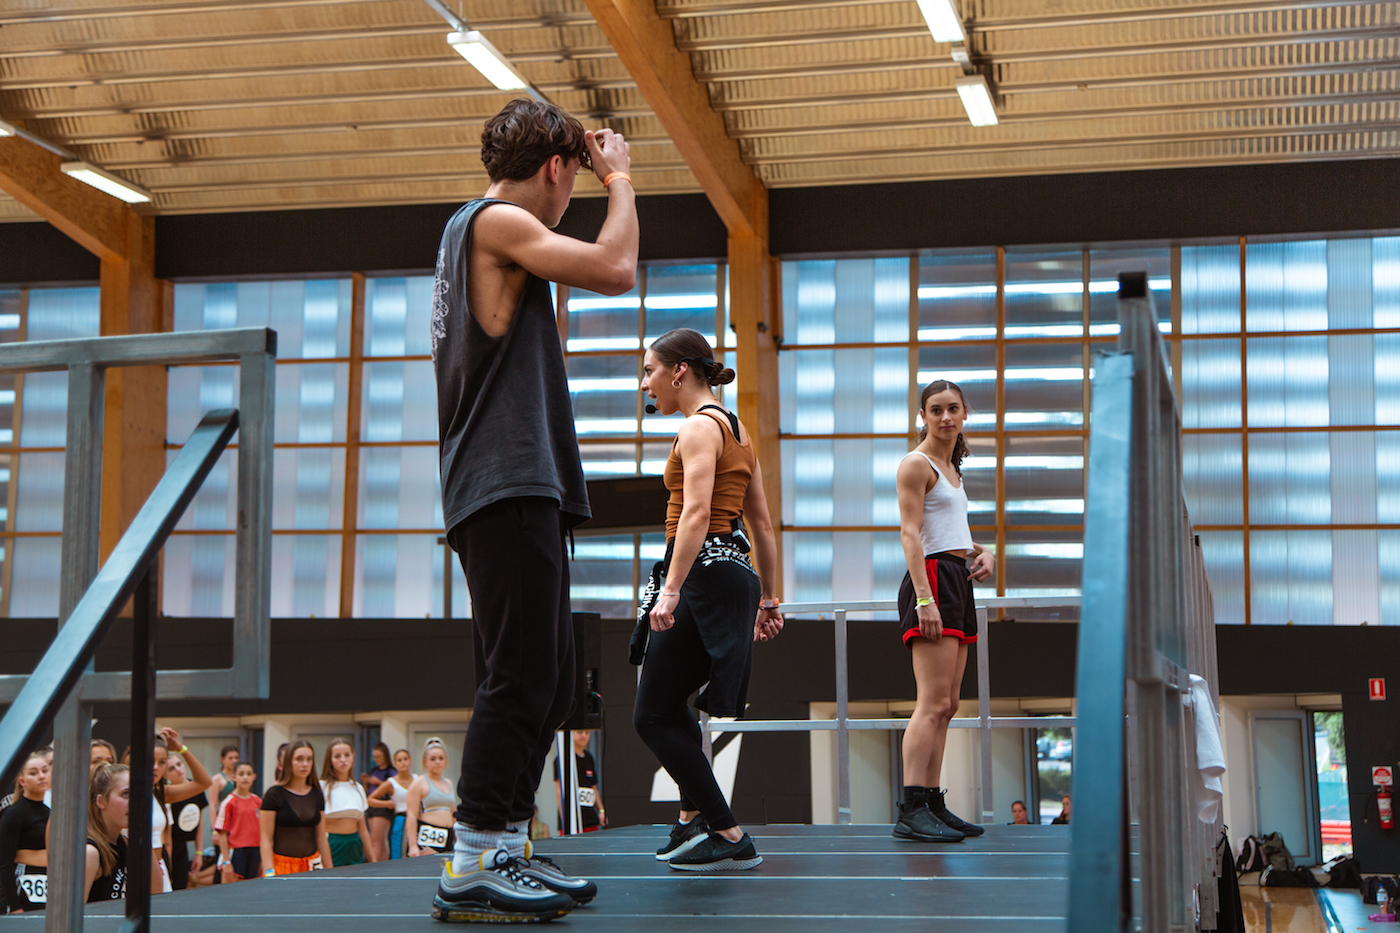 Dream Dance Company member Cat Santos taking class at ADF 2018, assisted by fellow Dream Dance castmate Maikolo Fekitoa